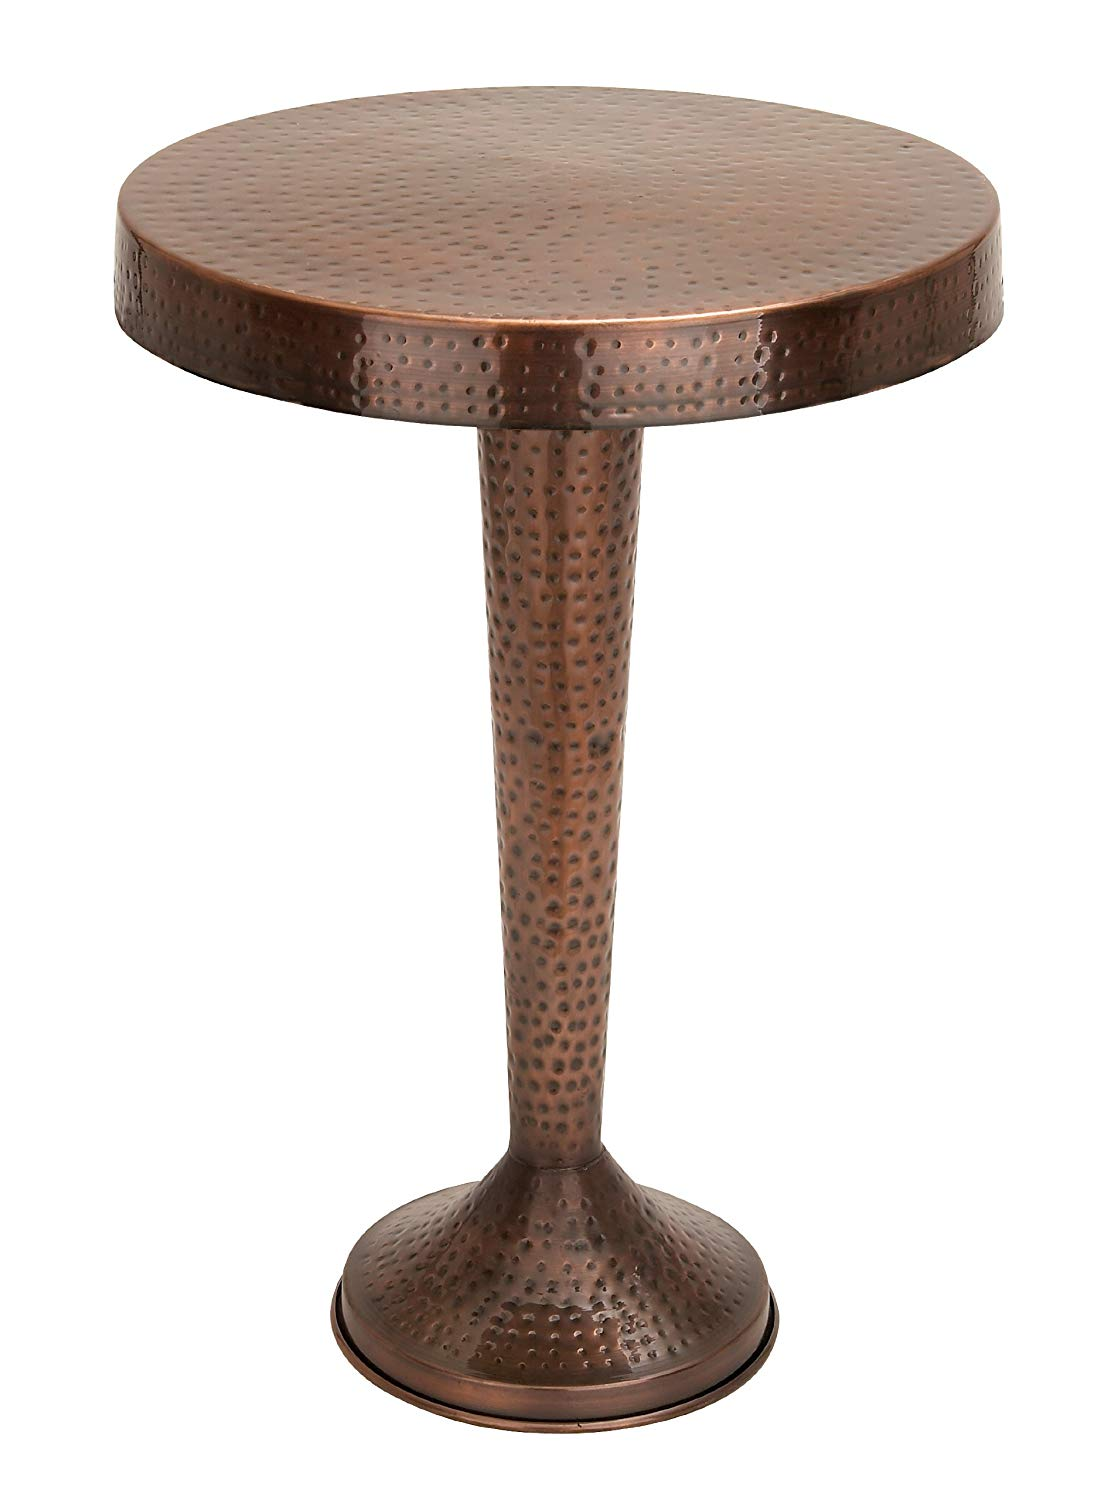 benzara vintage inspire metal bronze accent table knurl inch kitchen dining computer tables for home barn door dimensions mirrored side threshold trim barbie furniture big coffee